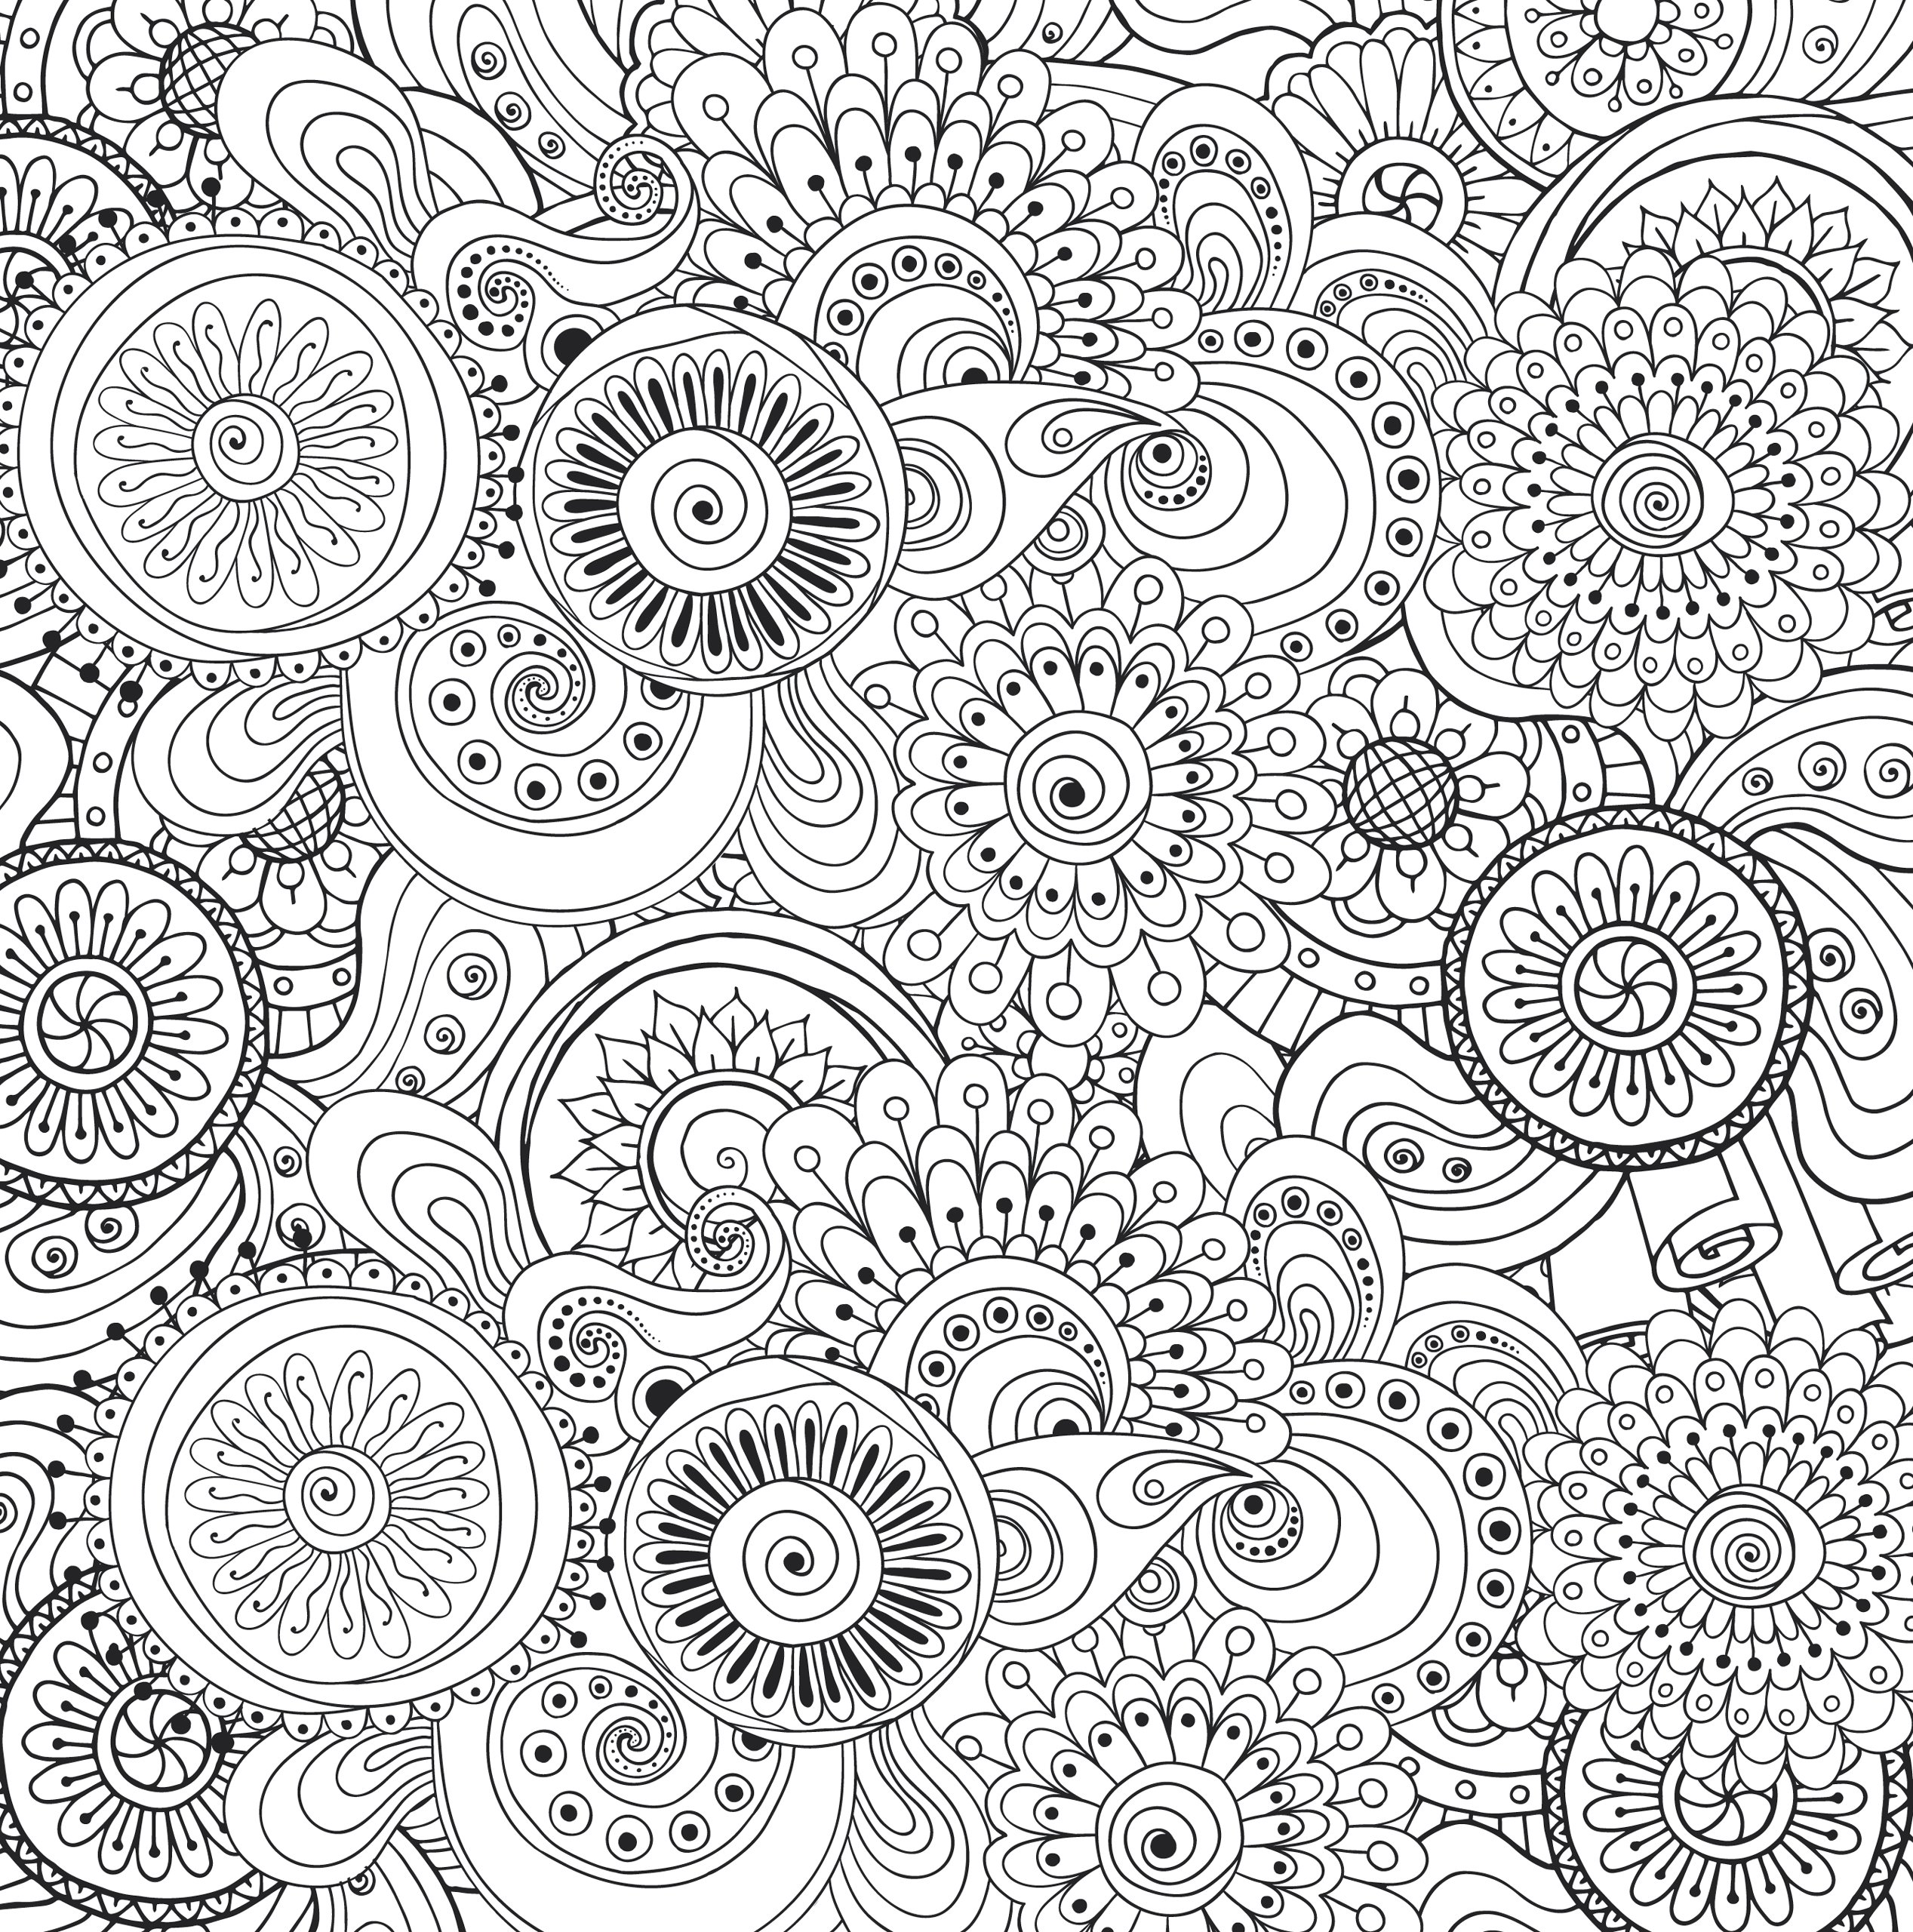 Galerry stress relief flower coloring pages